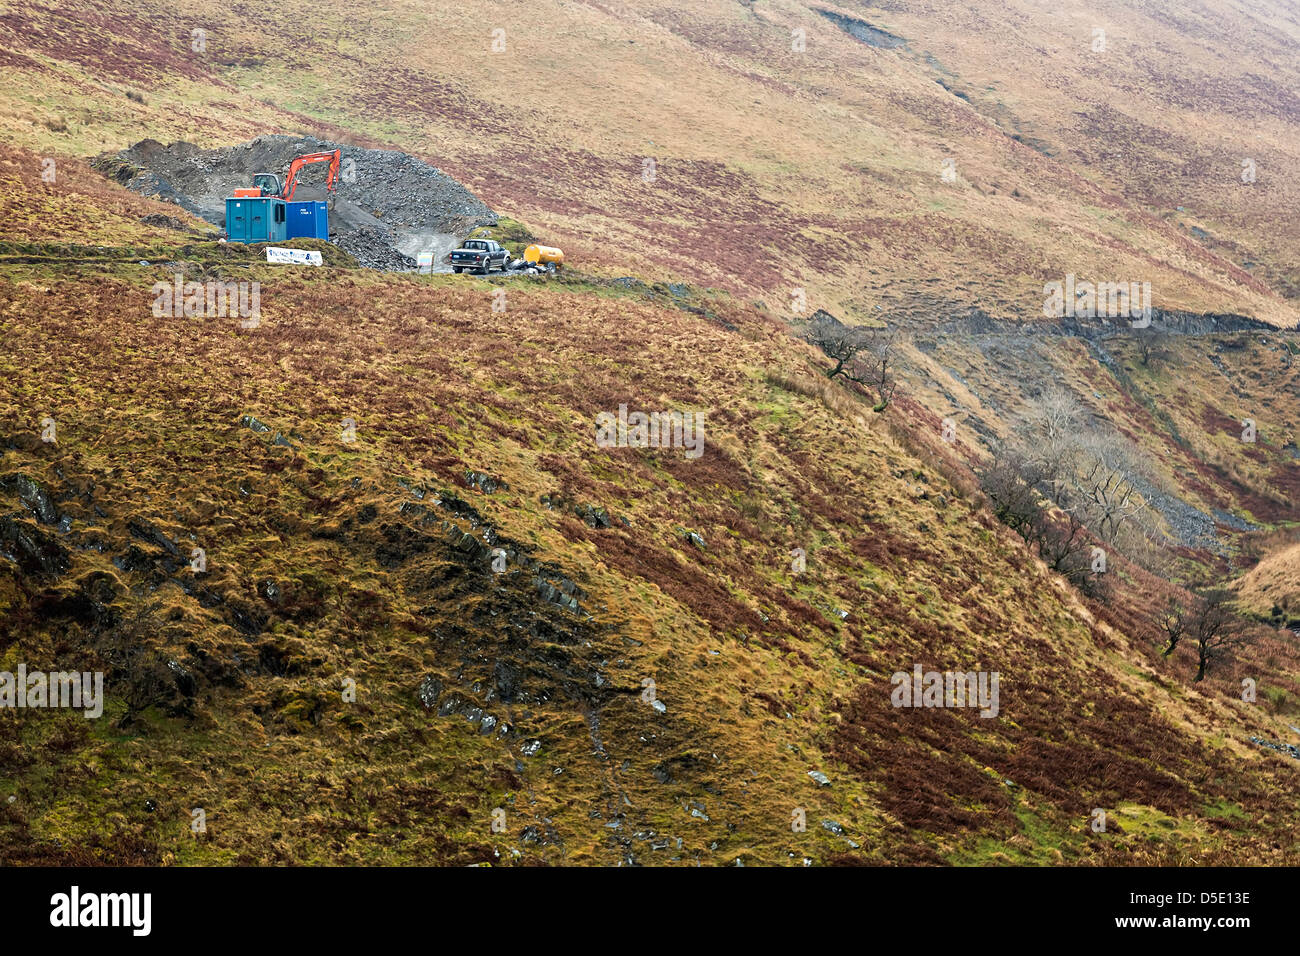 Laying pipeline through open moorland near Cwmystwyth, Wales, UK - Stock Image